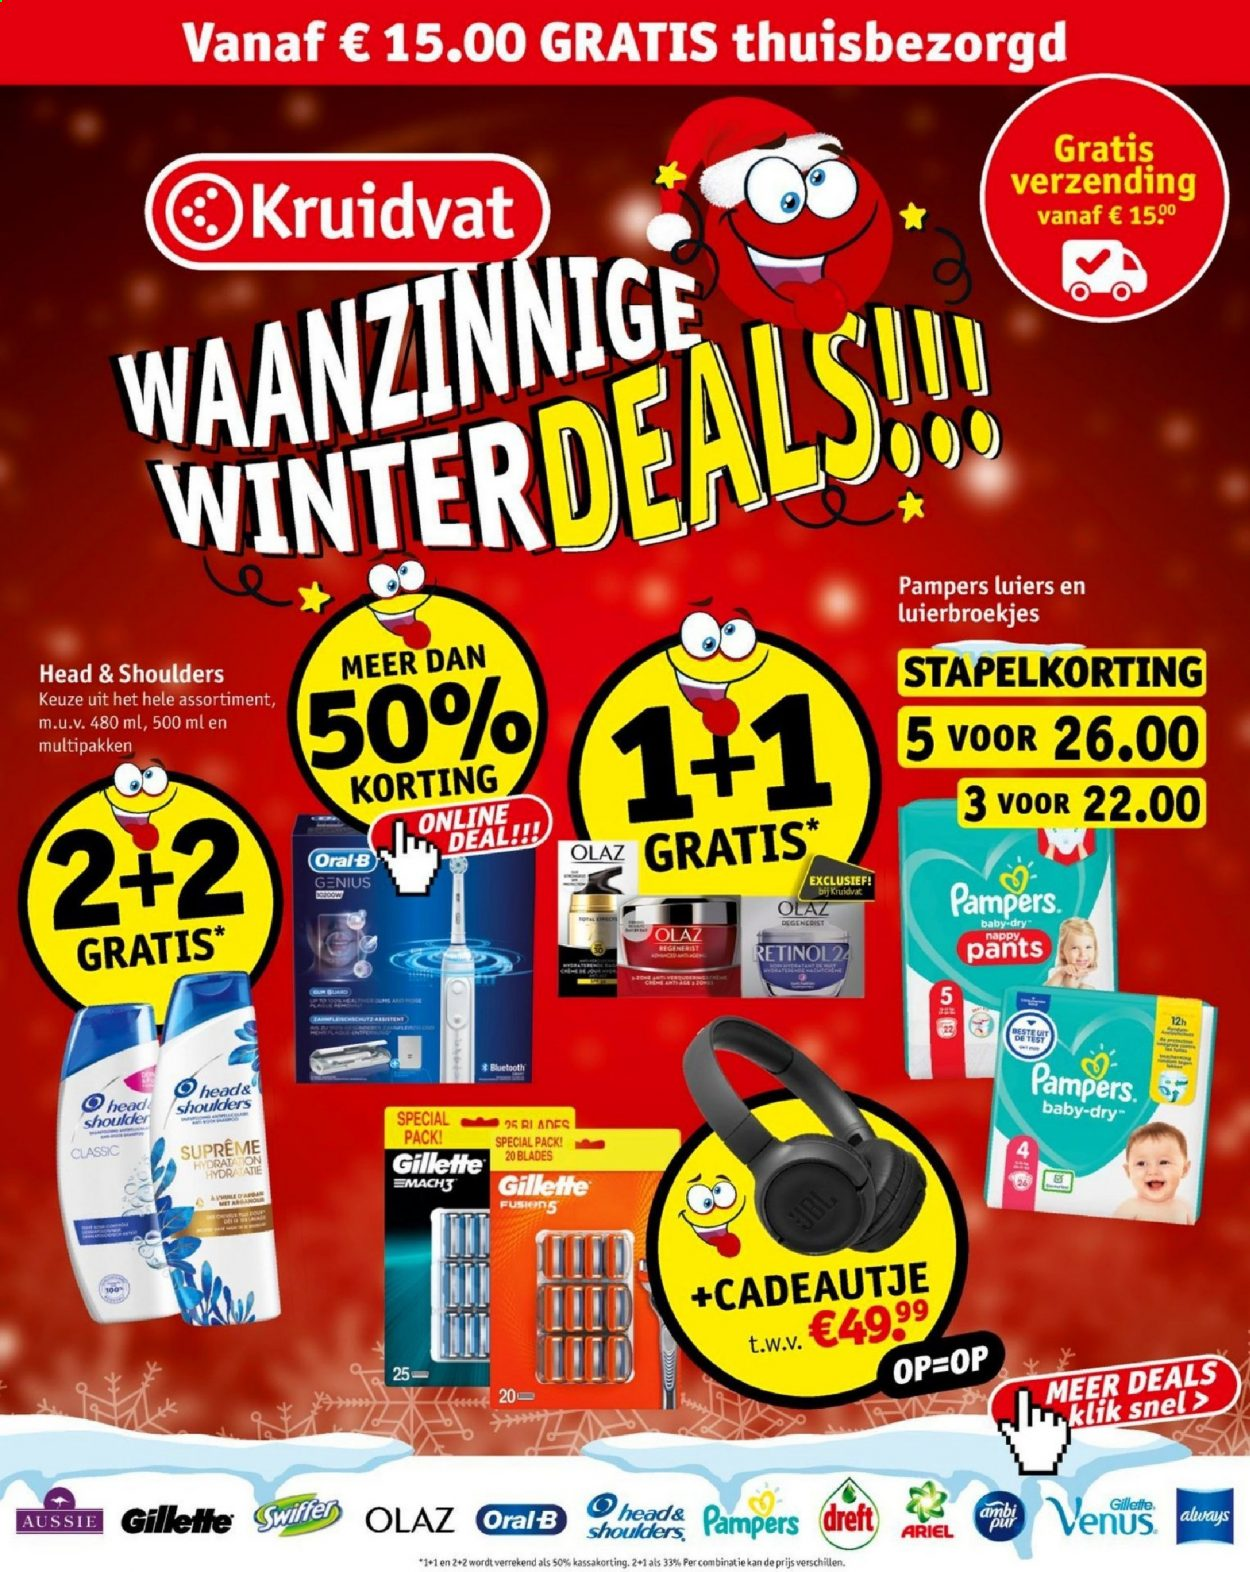 Kruidvat-aanbieding - 14.12.2020 - 27.12.2020 -  producten in de aanbieding - ariel, baby, bluetooth, head, head & shoulders, jbl, korting, oral b, pampers, pur, venus, olaz, gillette, always, luiers. Pagina 1.